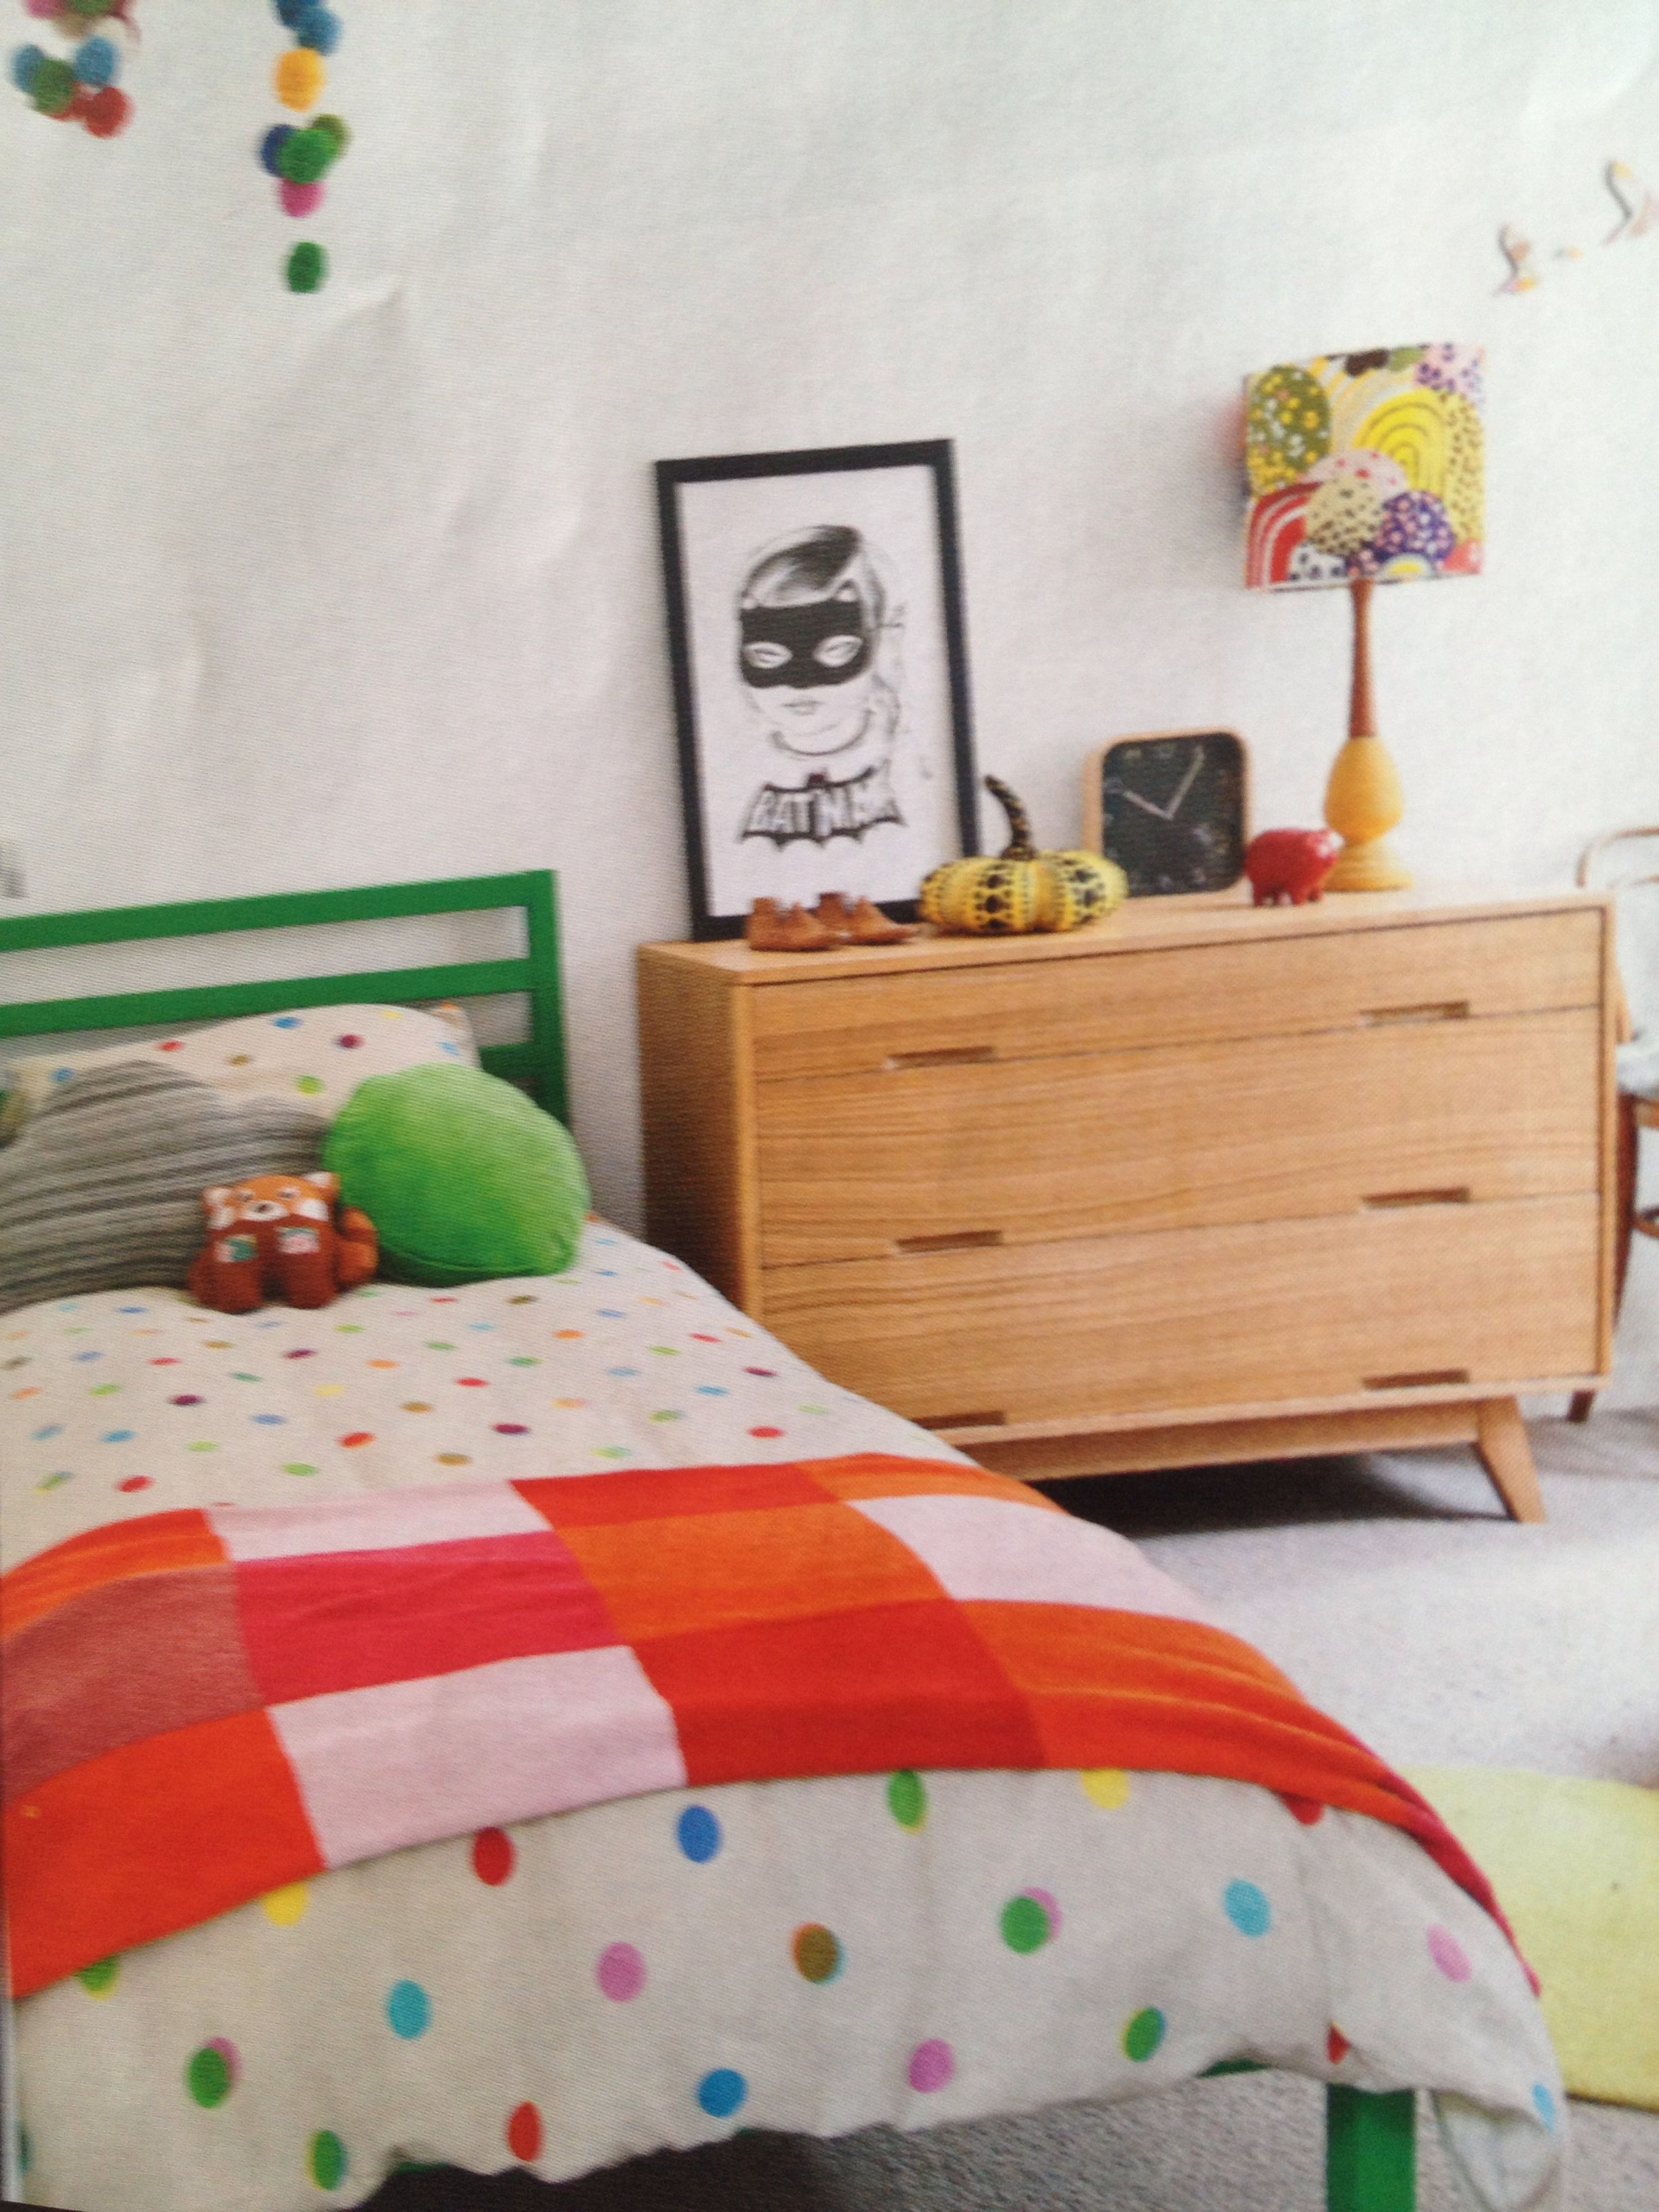 Dulux Kids Bedroom In A Box: IKEA Tarva Bed Painted In Dulux Picturebook. From Home